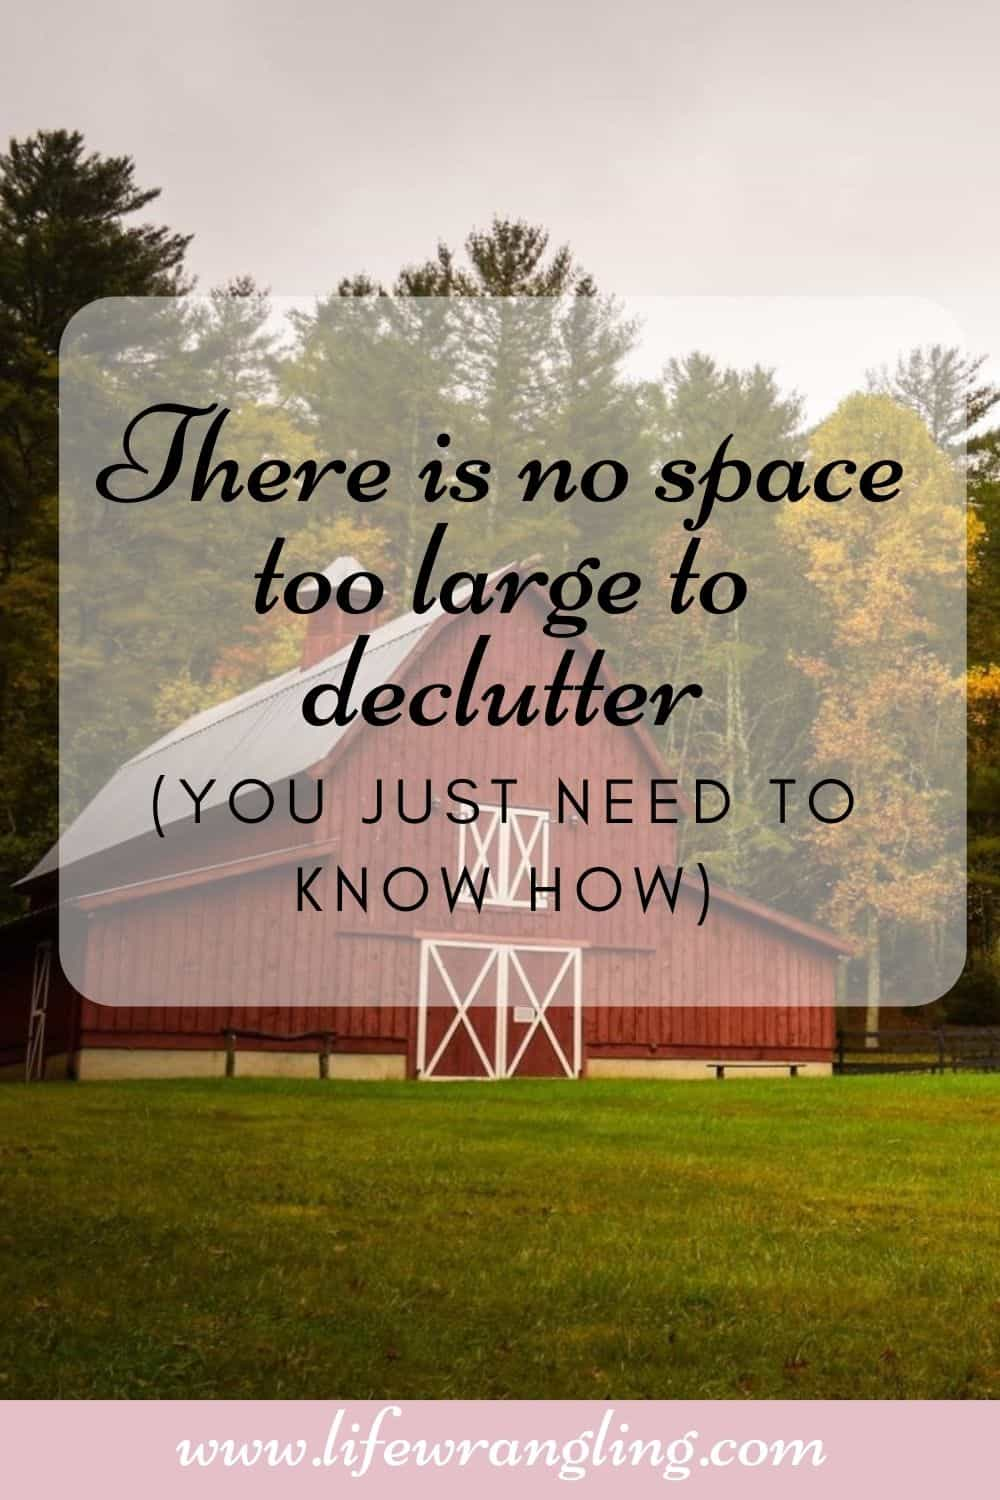 How to declutter anything (including a barn) 1